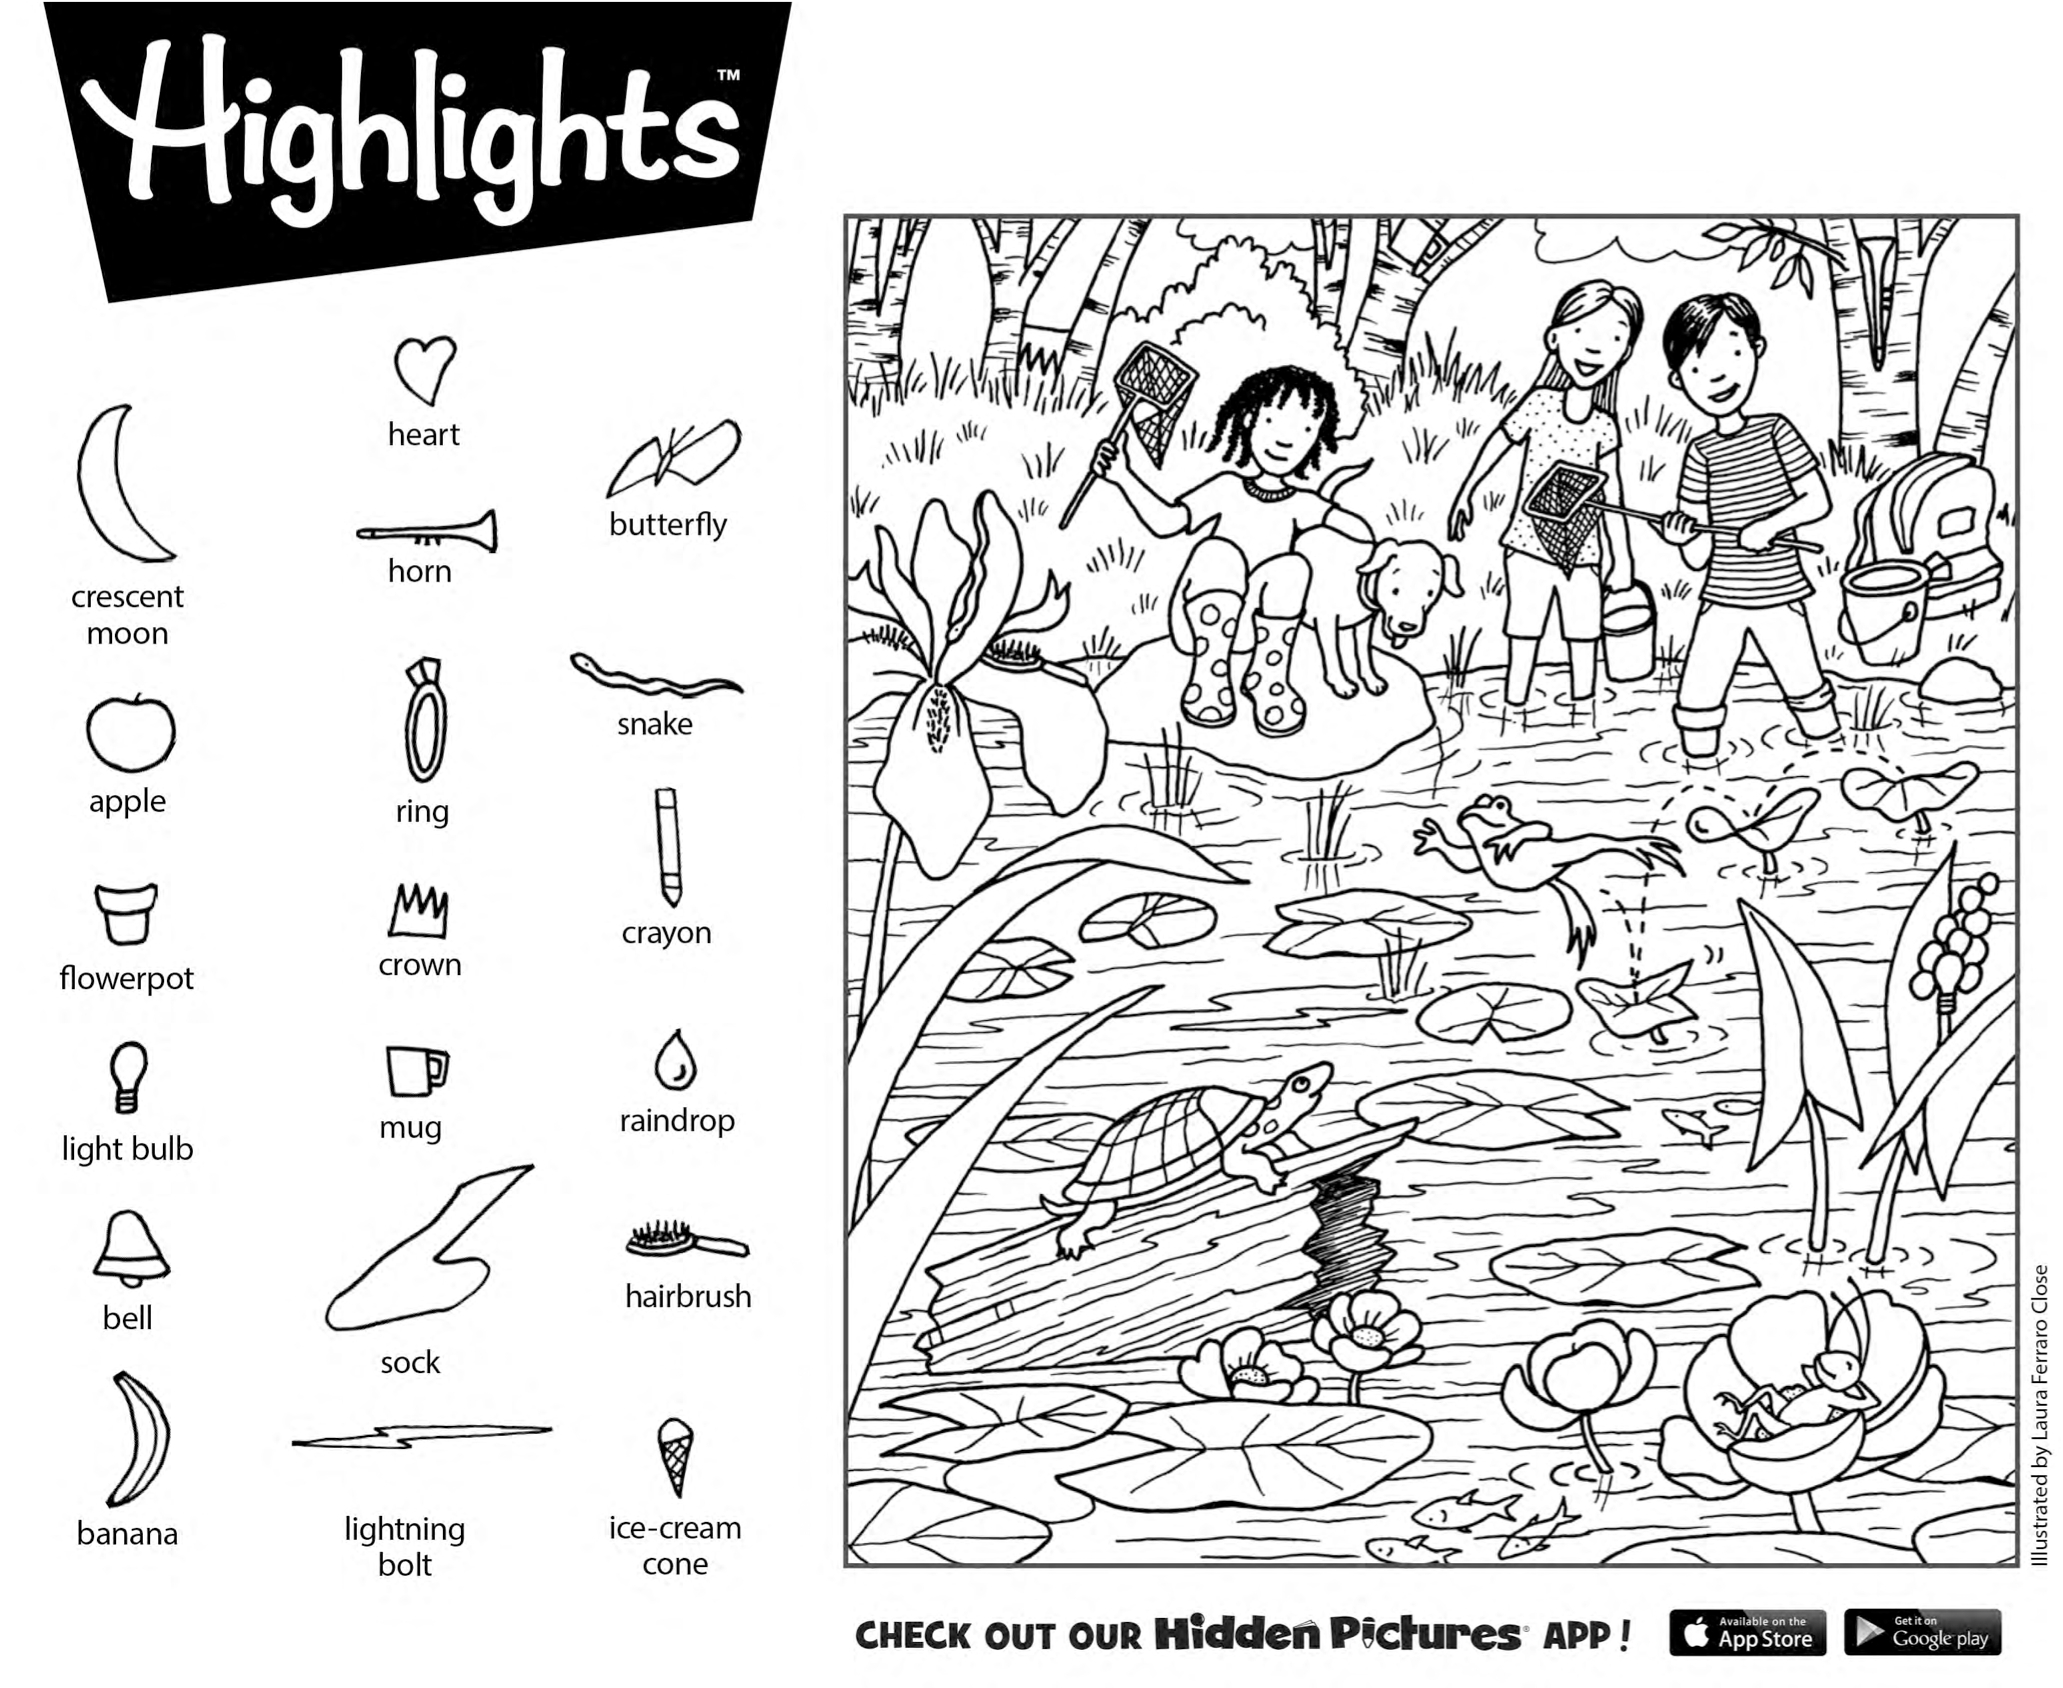 Download This Free Printable Hidden Pictures Puzzle From - Printable Hidden Puzzle Pictures